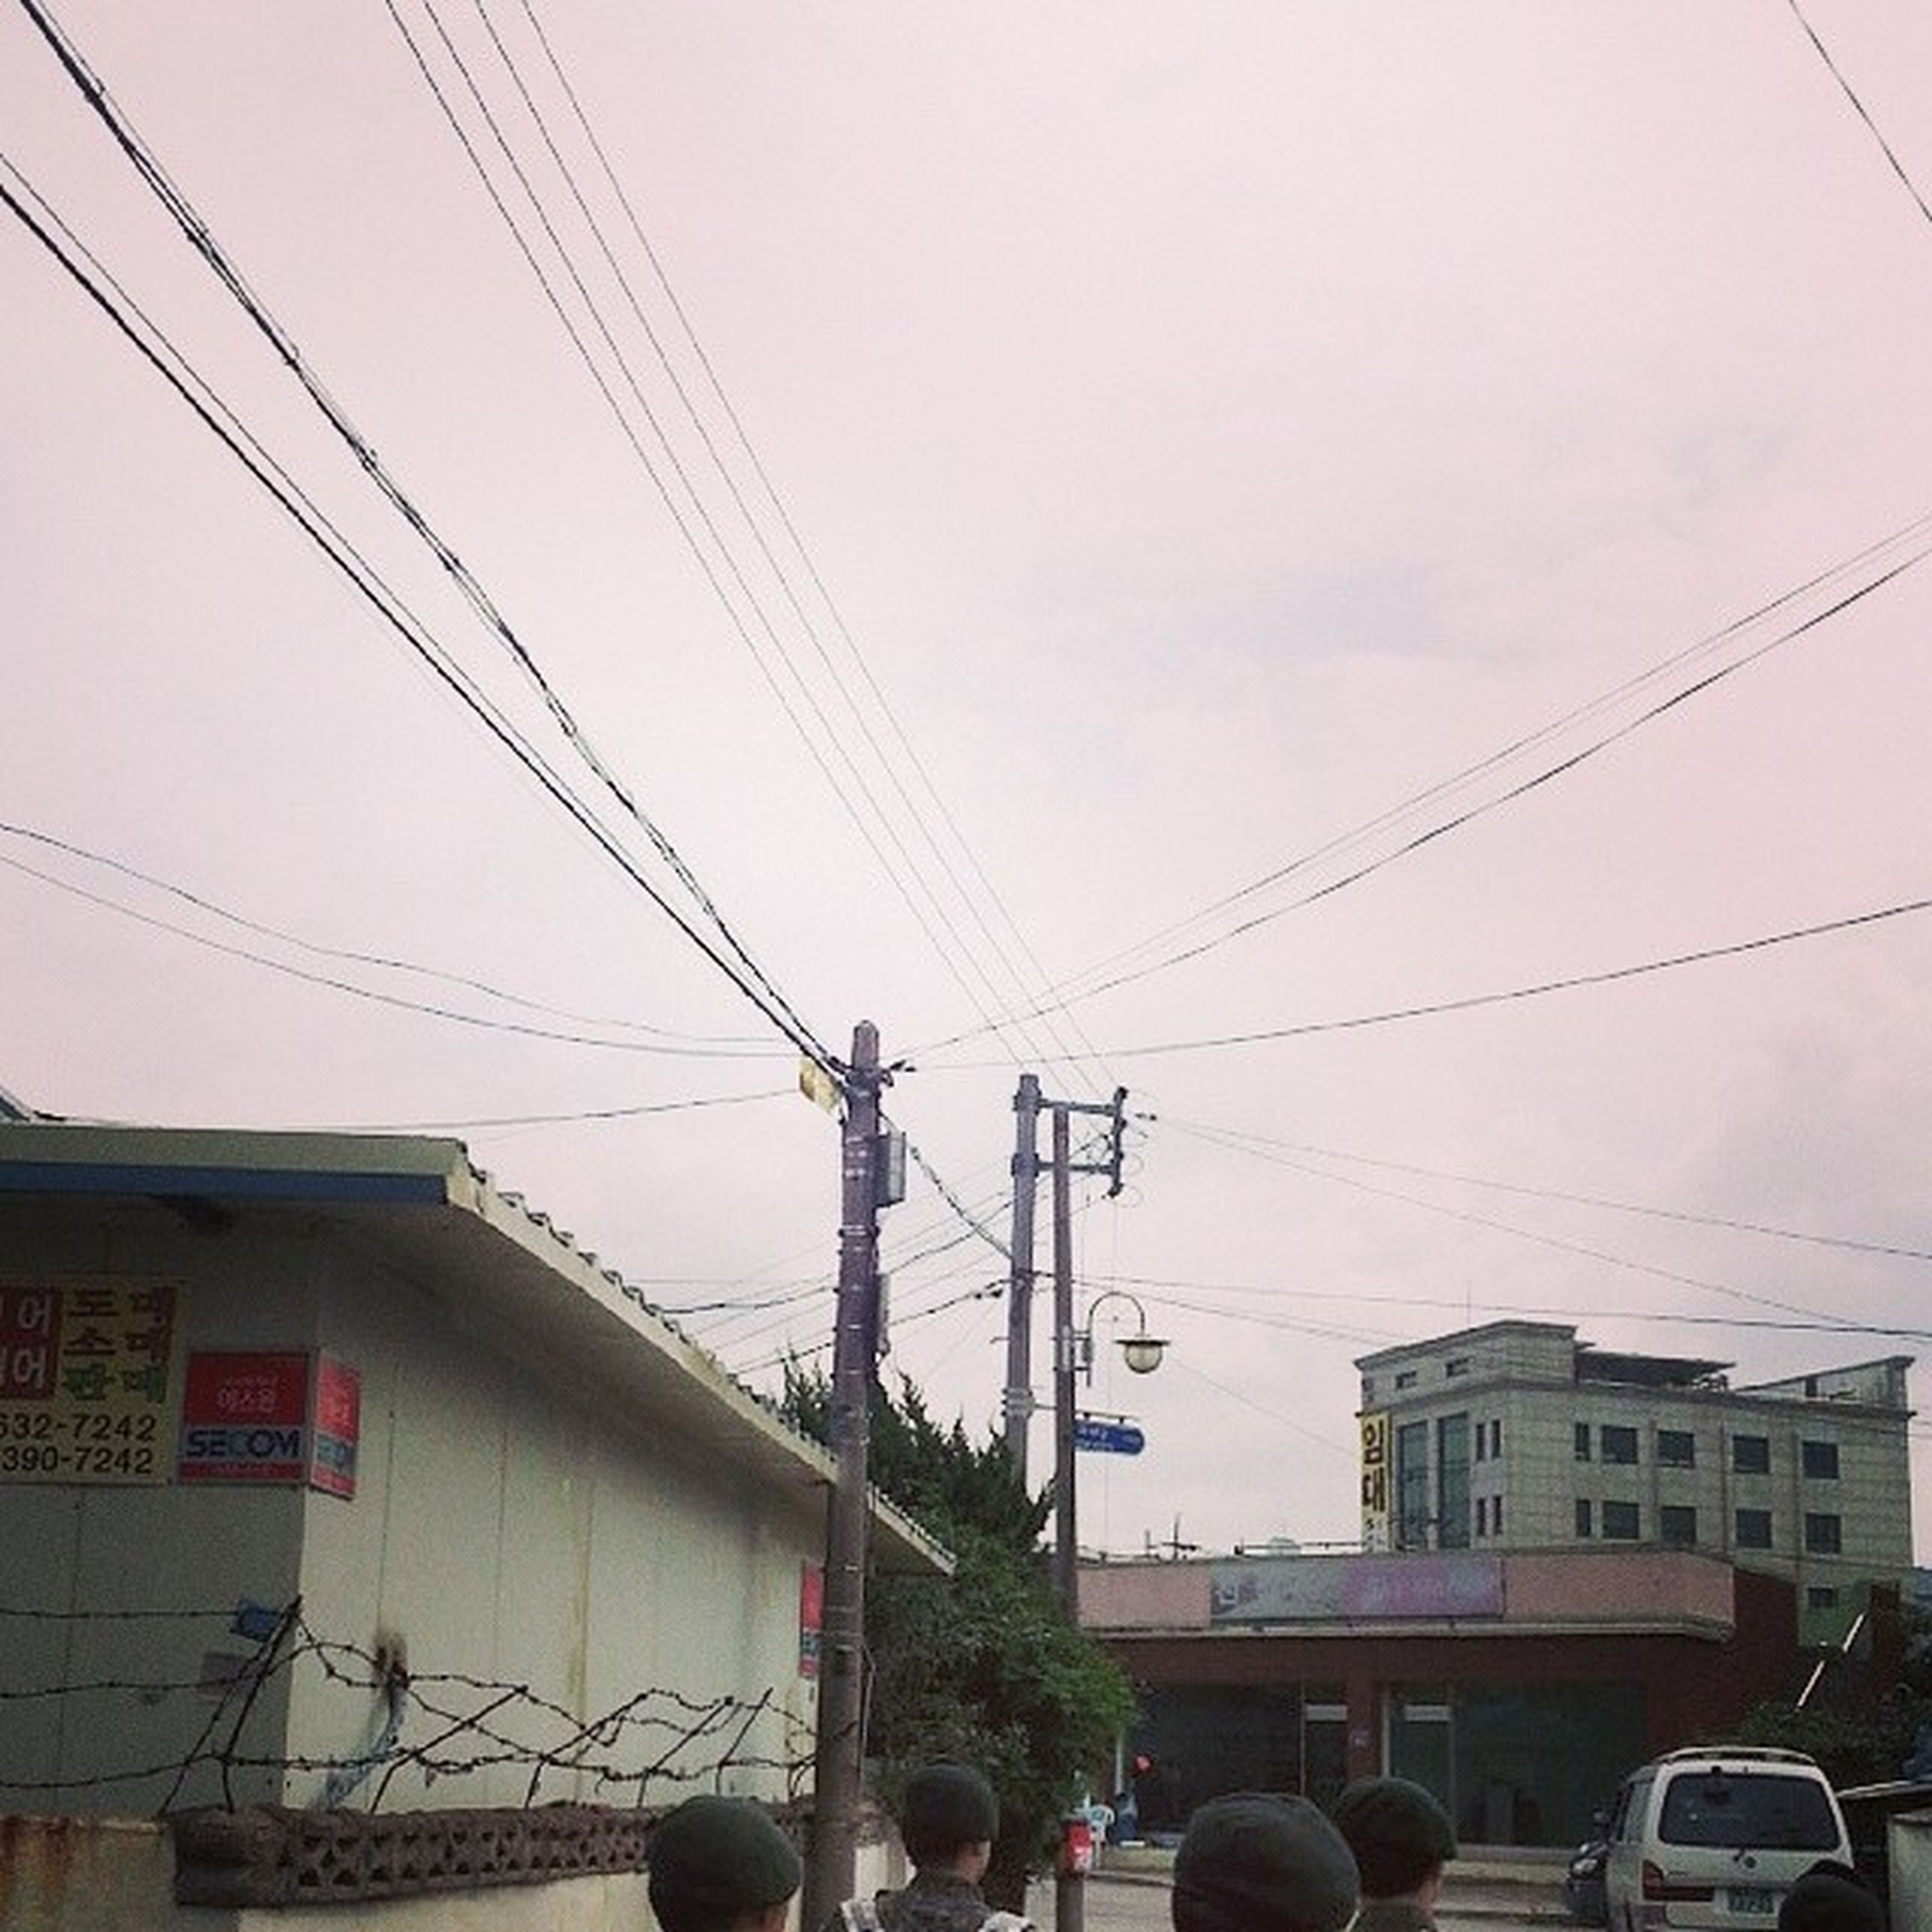 power line, electricity pylon, cable, building exterior, transportation, architecture, power supply, built structure, electricity, car, mode of transport, street, land vehicle, city, power cable, sky, connection, fuel and power generation, residential structure, residential building